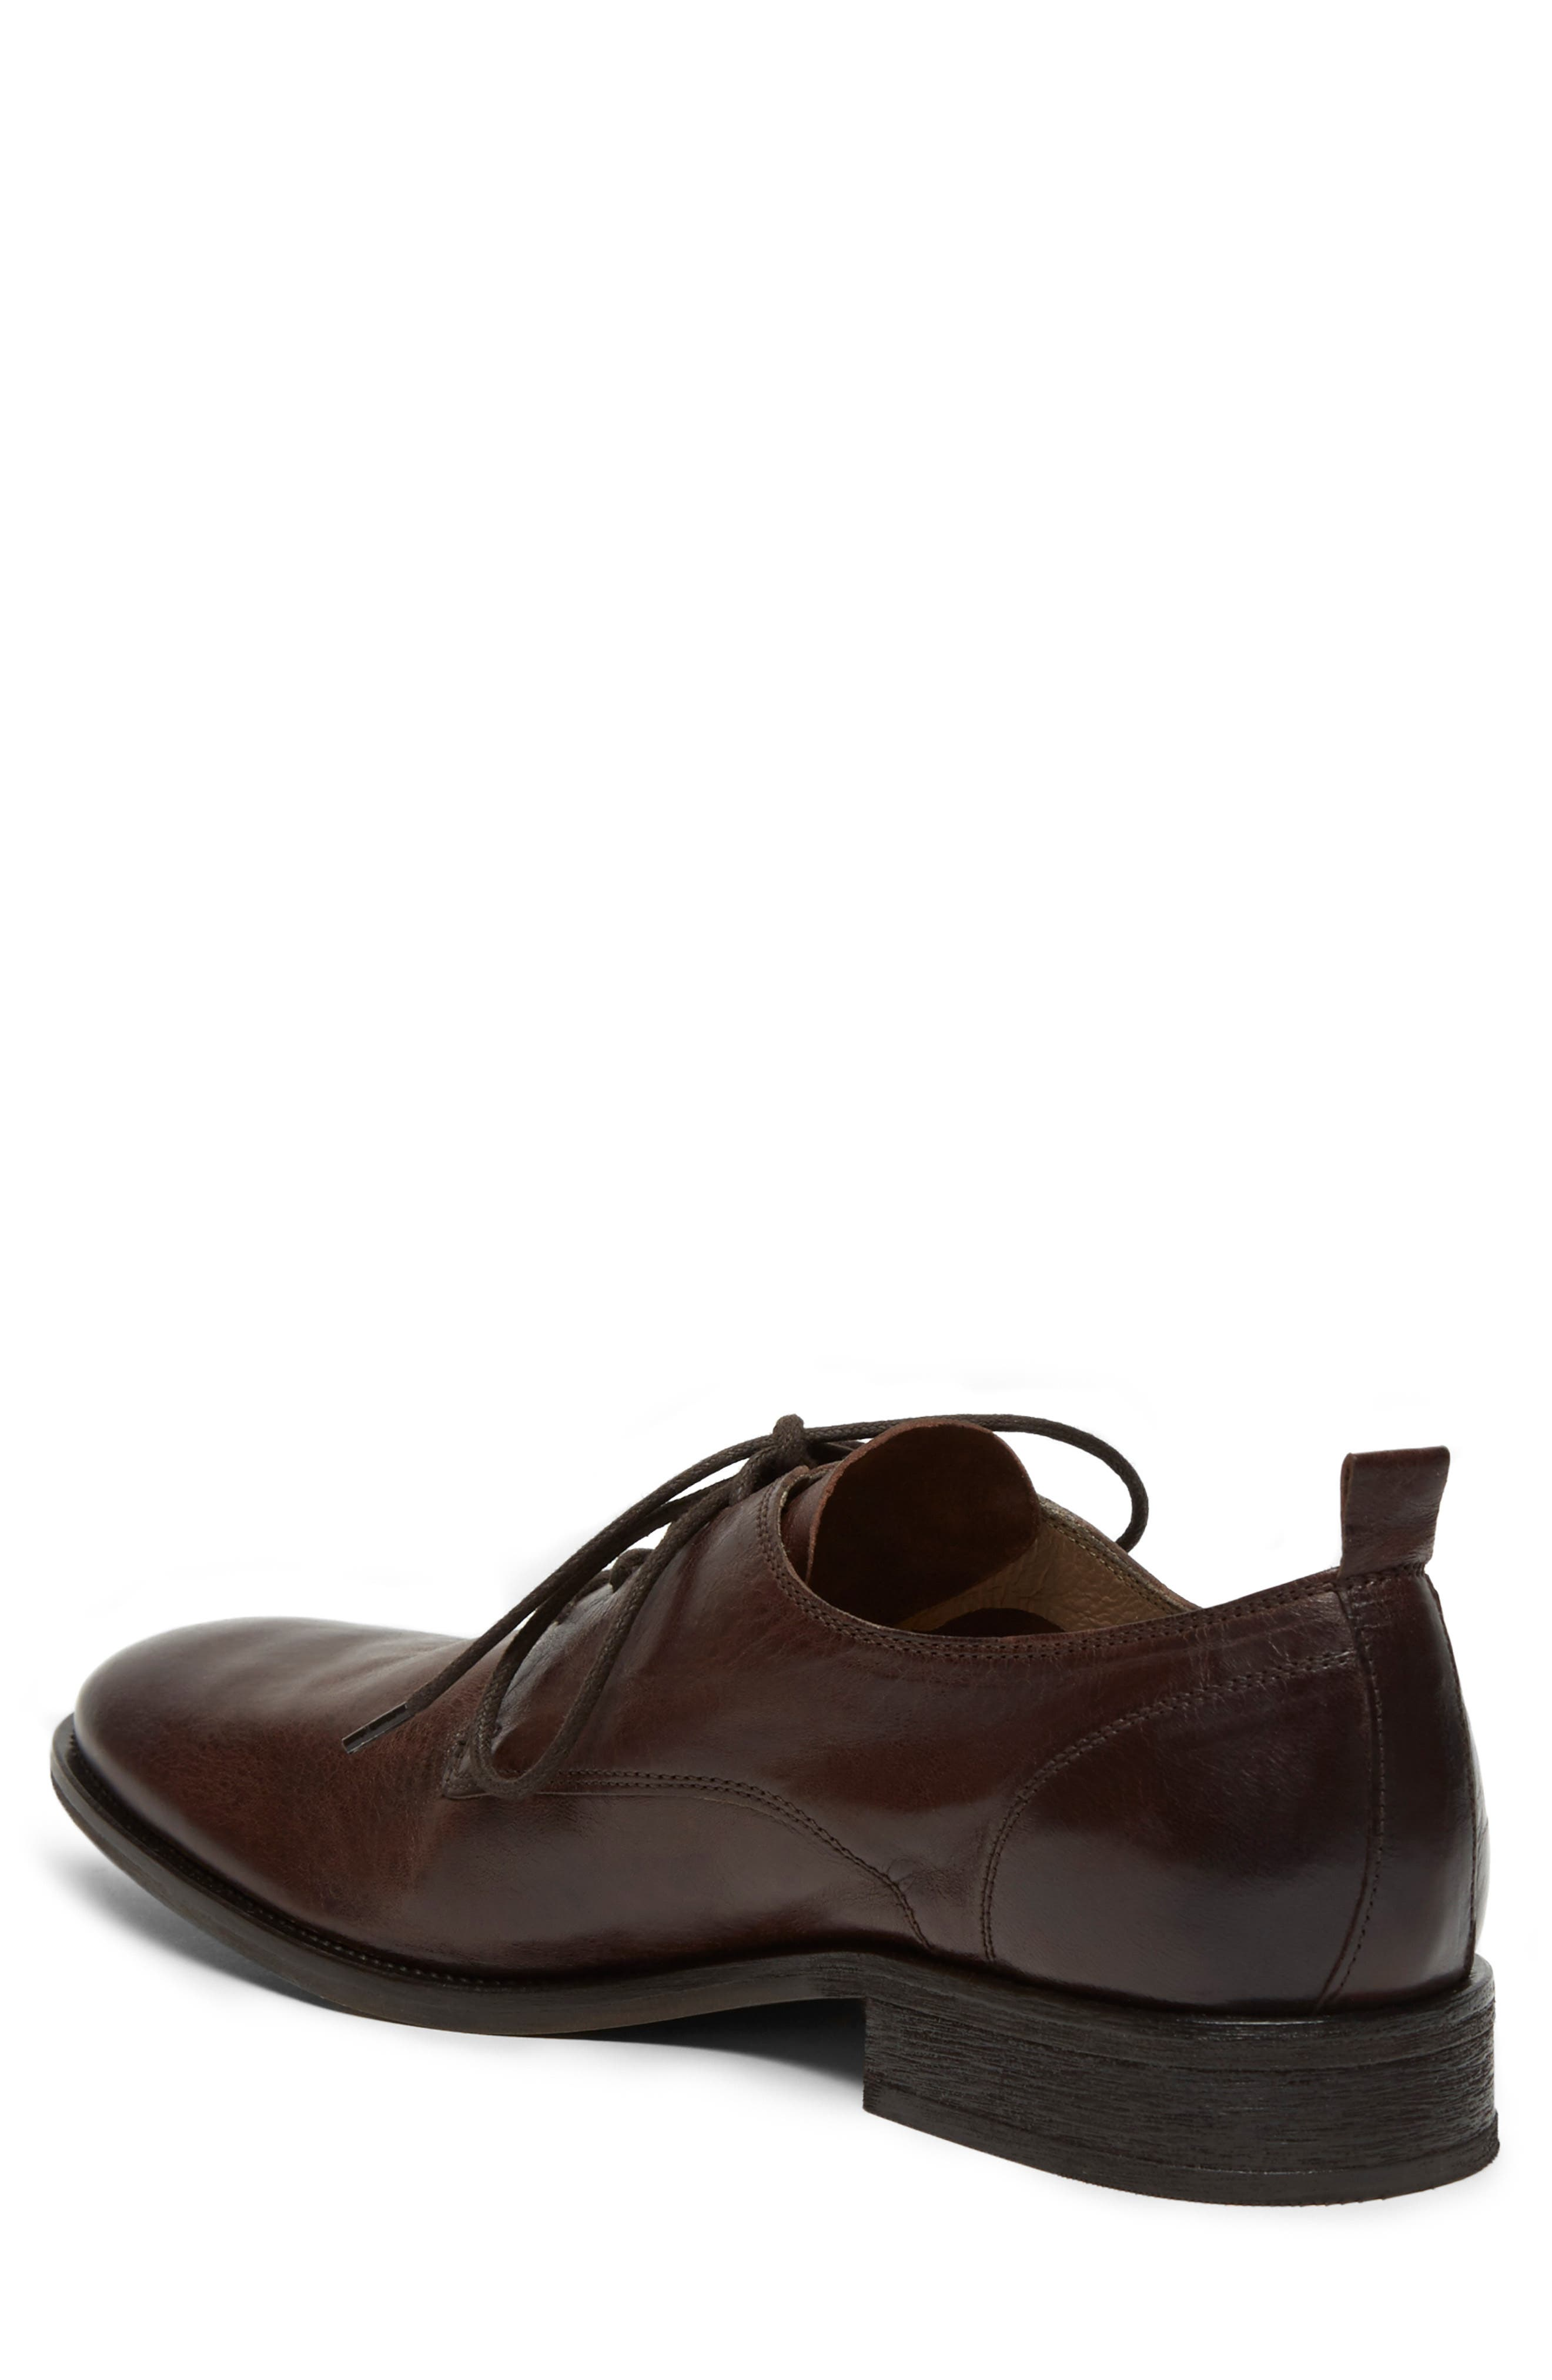 KENNETH COLE NEW YORK, Indio Plain Toe Derby, Alternate thumbnail 2, color, BROWN LEATHER